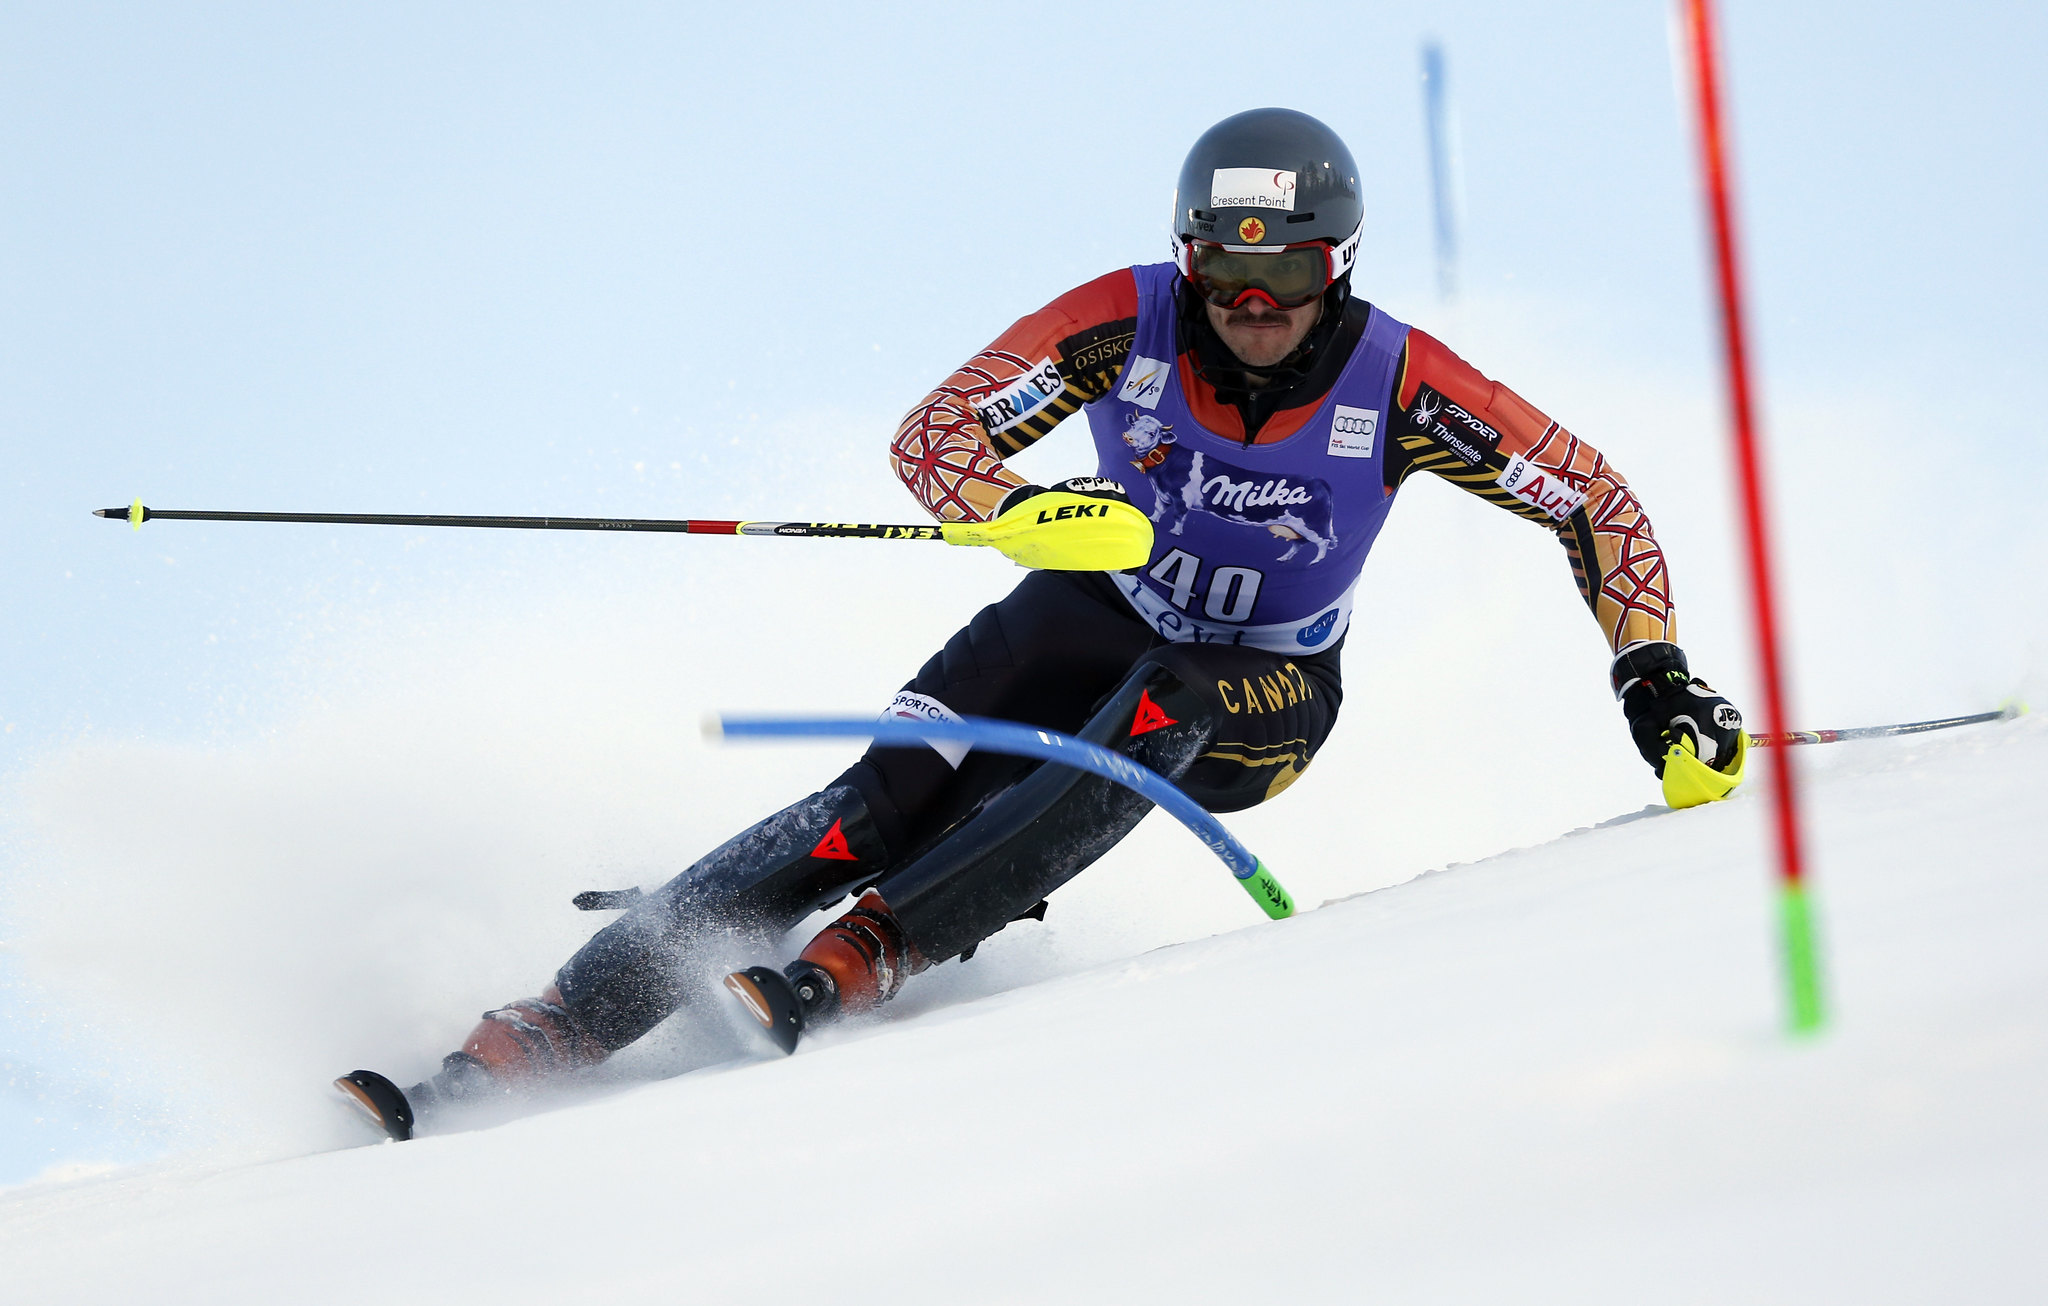 Brad Spence makes his return from injury in the slalom in Levi, FIN.